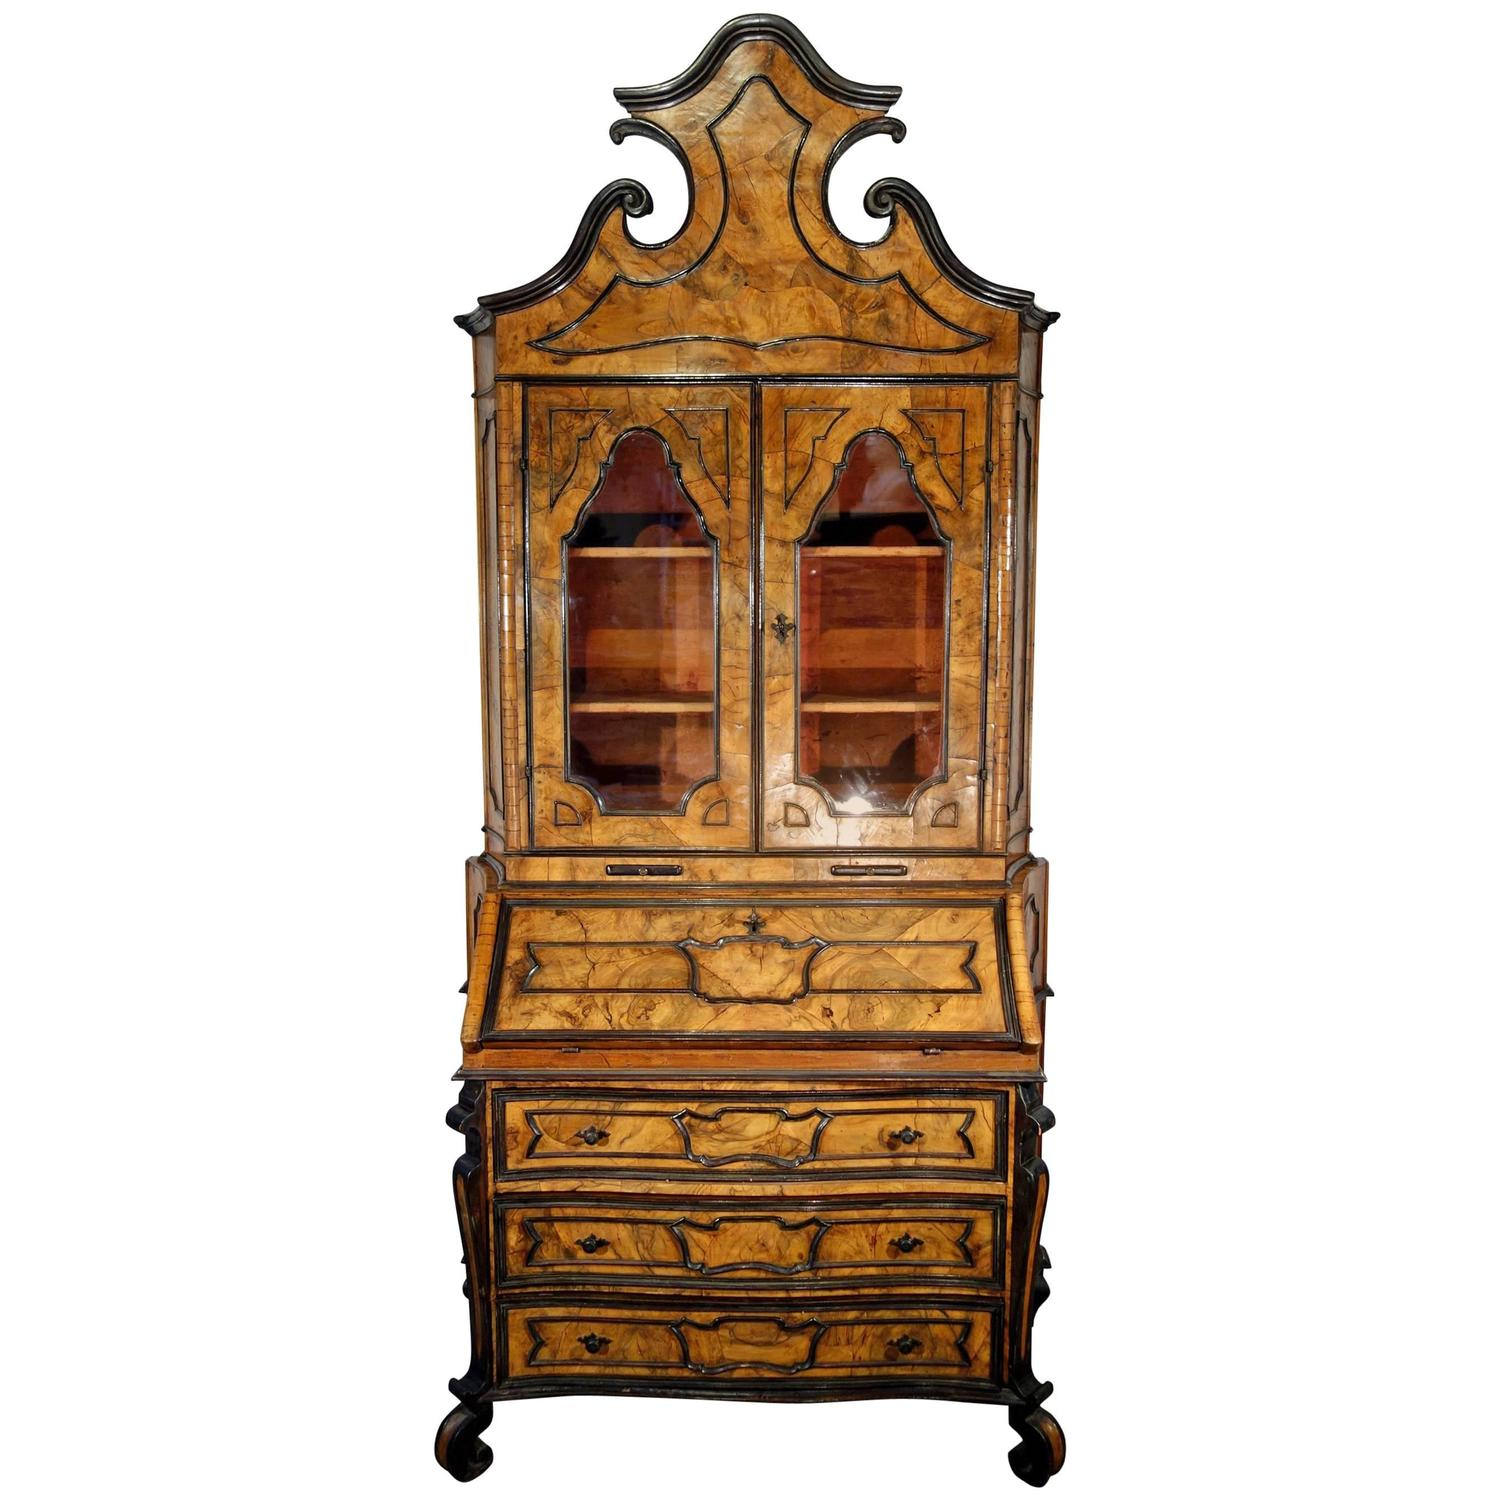 Louis XIV Furniture - 1,096 For Sale at 1stdibs